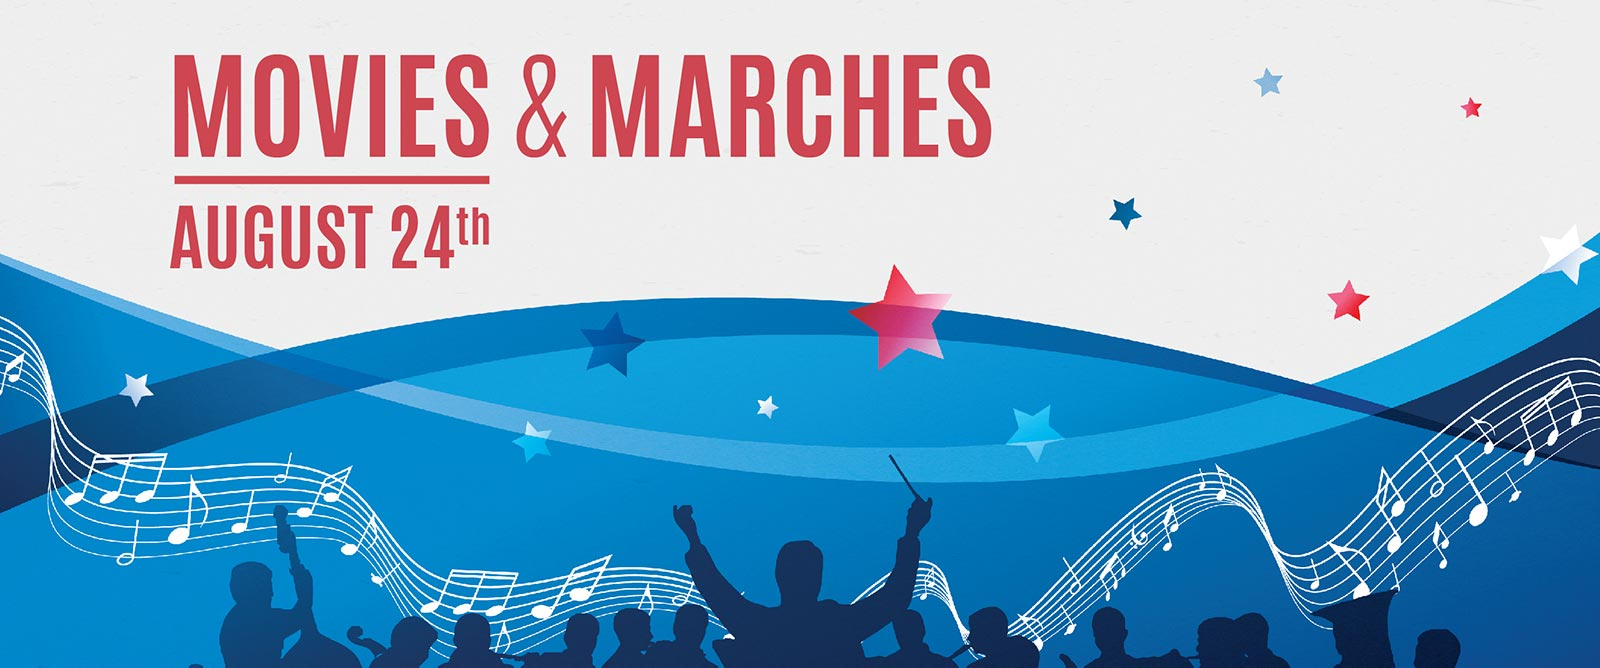 JSO Movies Marches